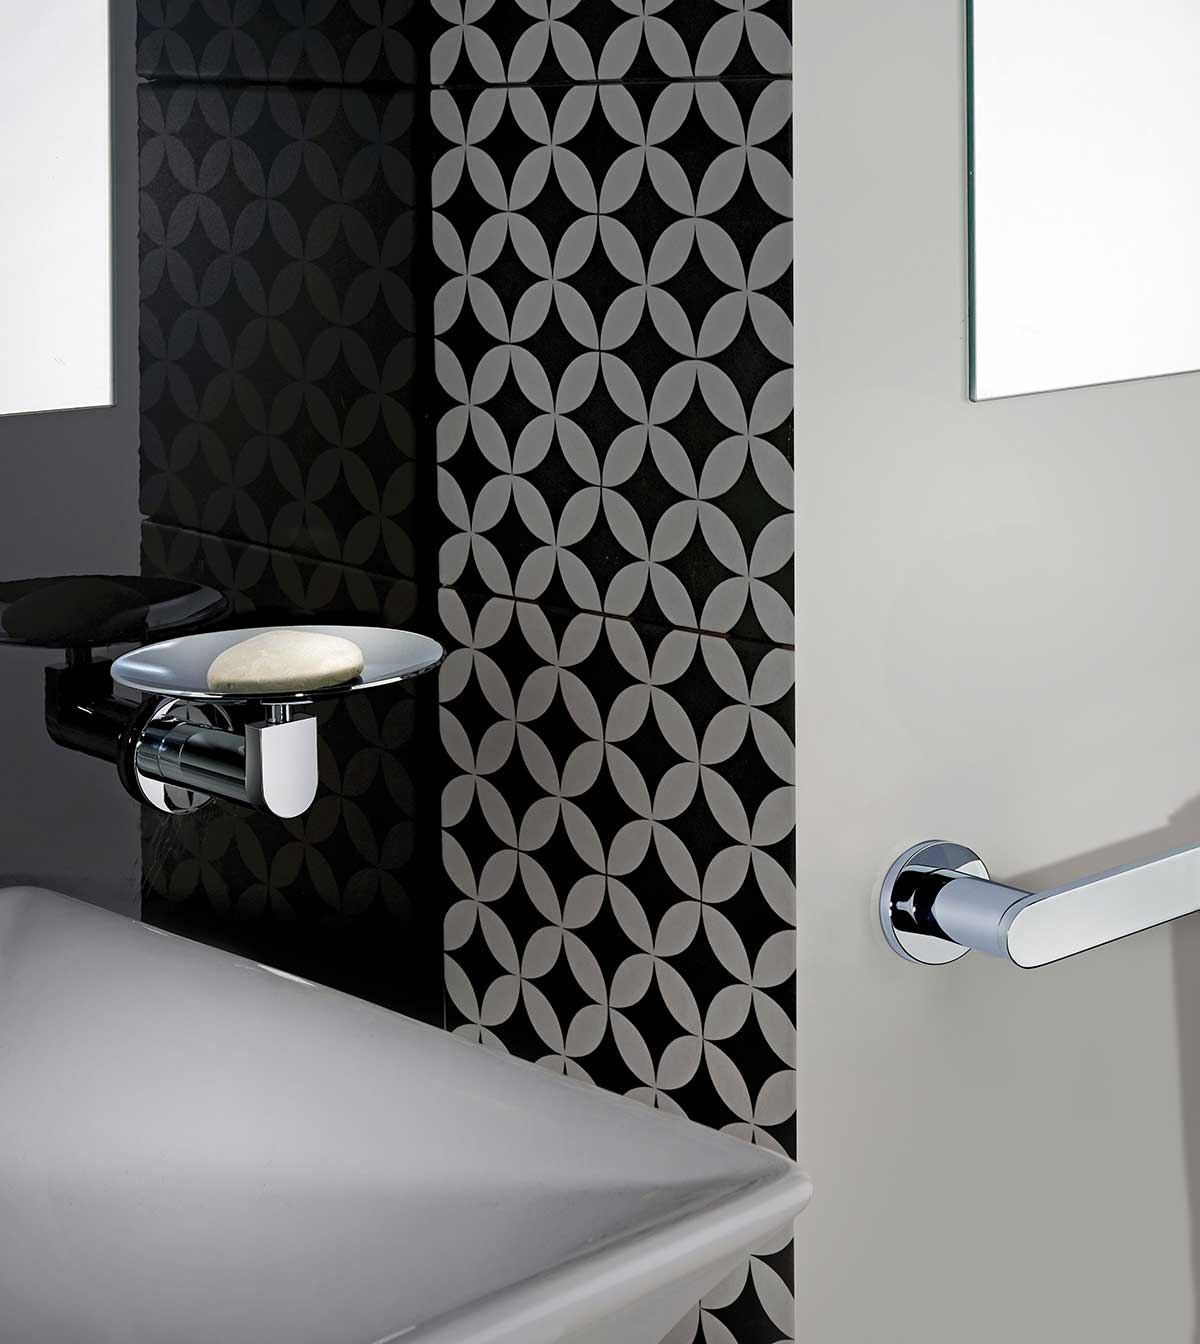 Bathroom Accessories Lahore interesting bathroom accessories lahore intended decorating